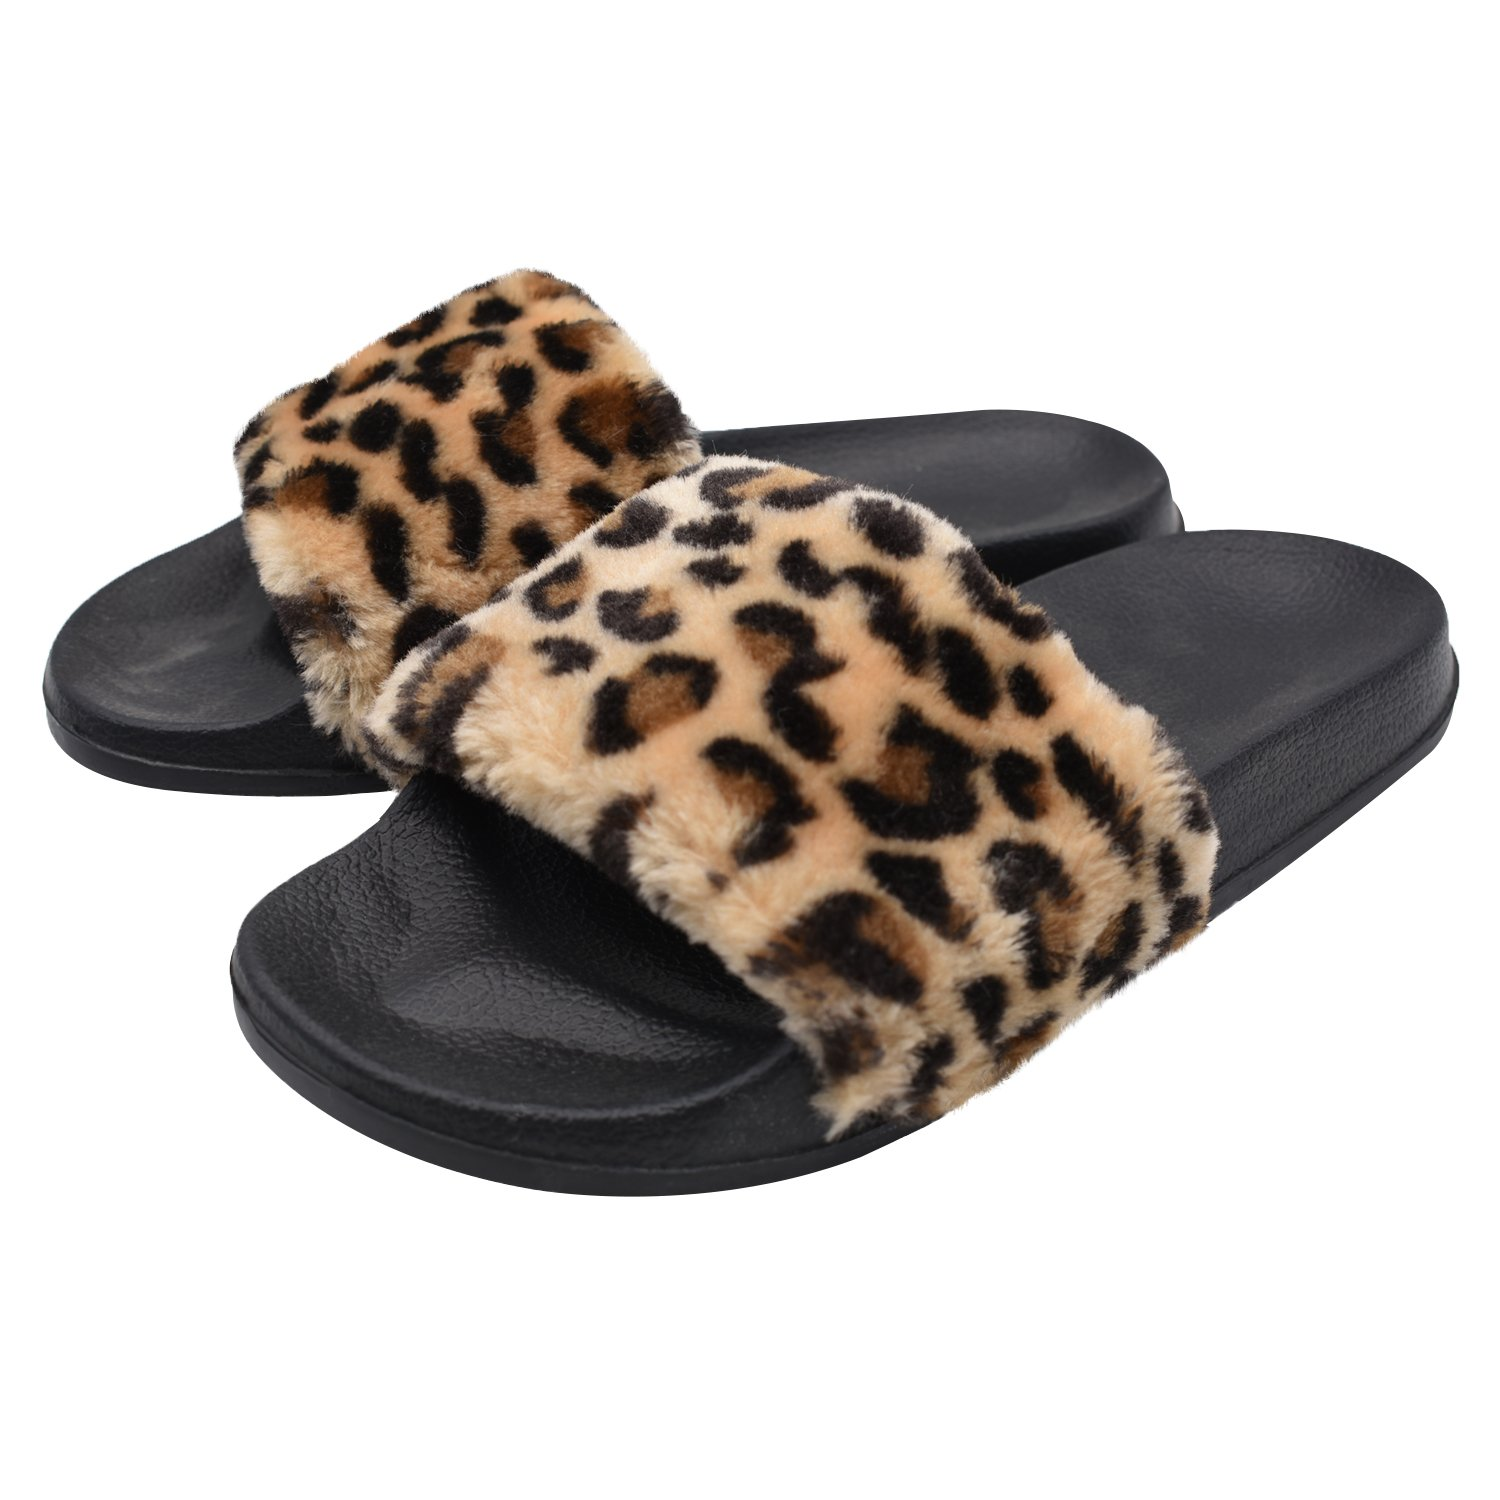 SunbowStar Women's Slippers Soft Slide Flat EVA Sandals with Fluffy Faux Fur